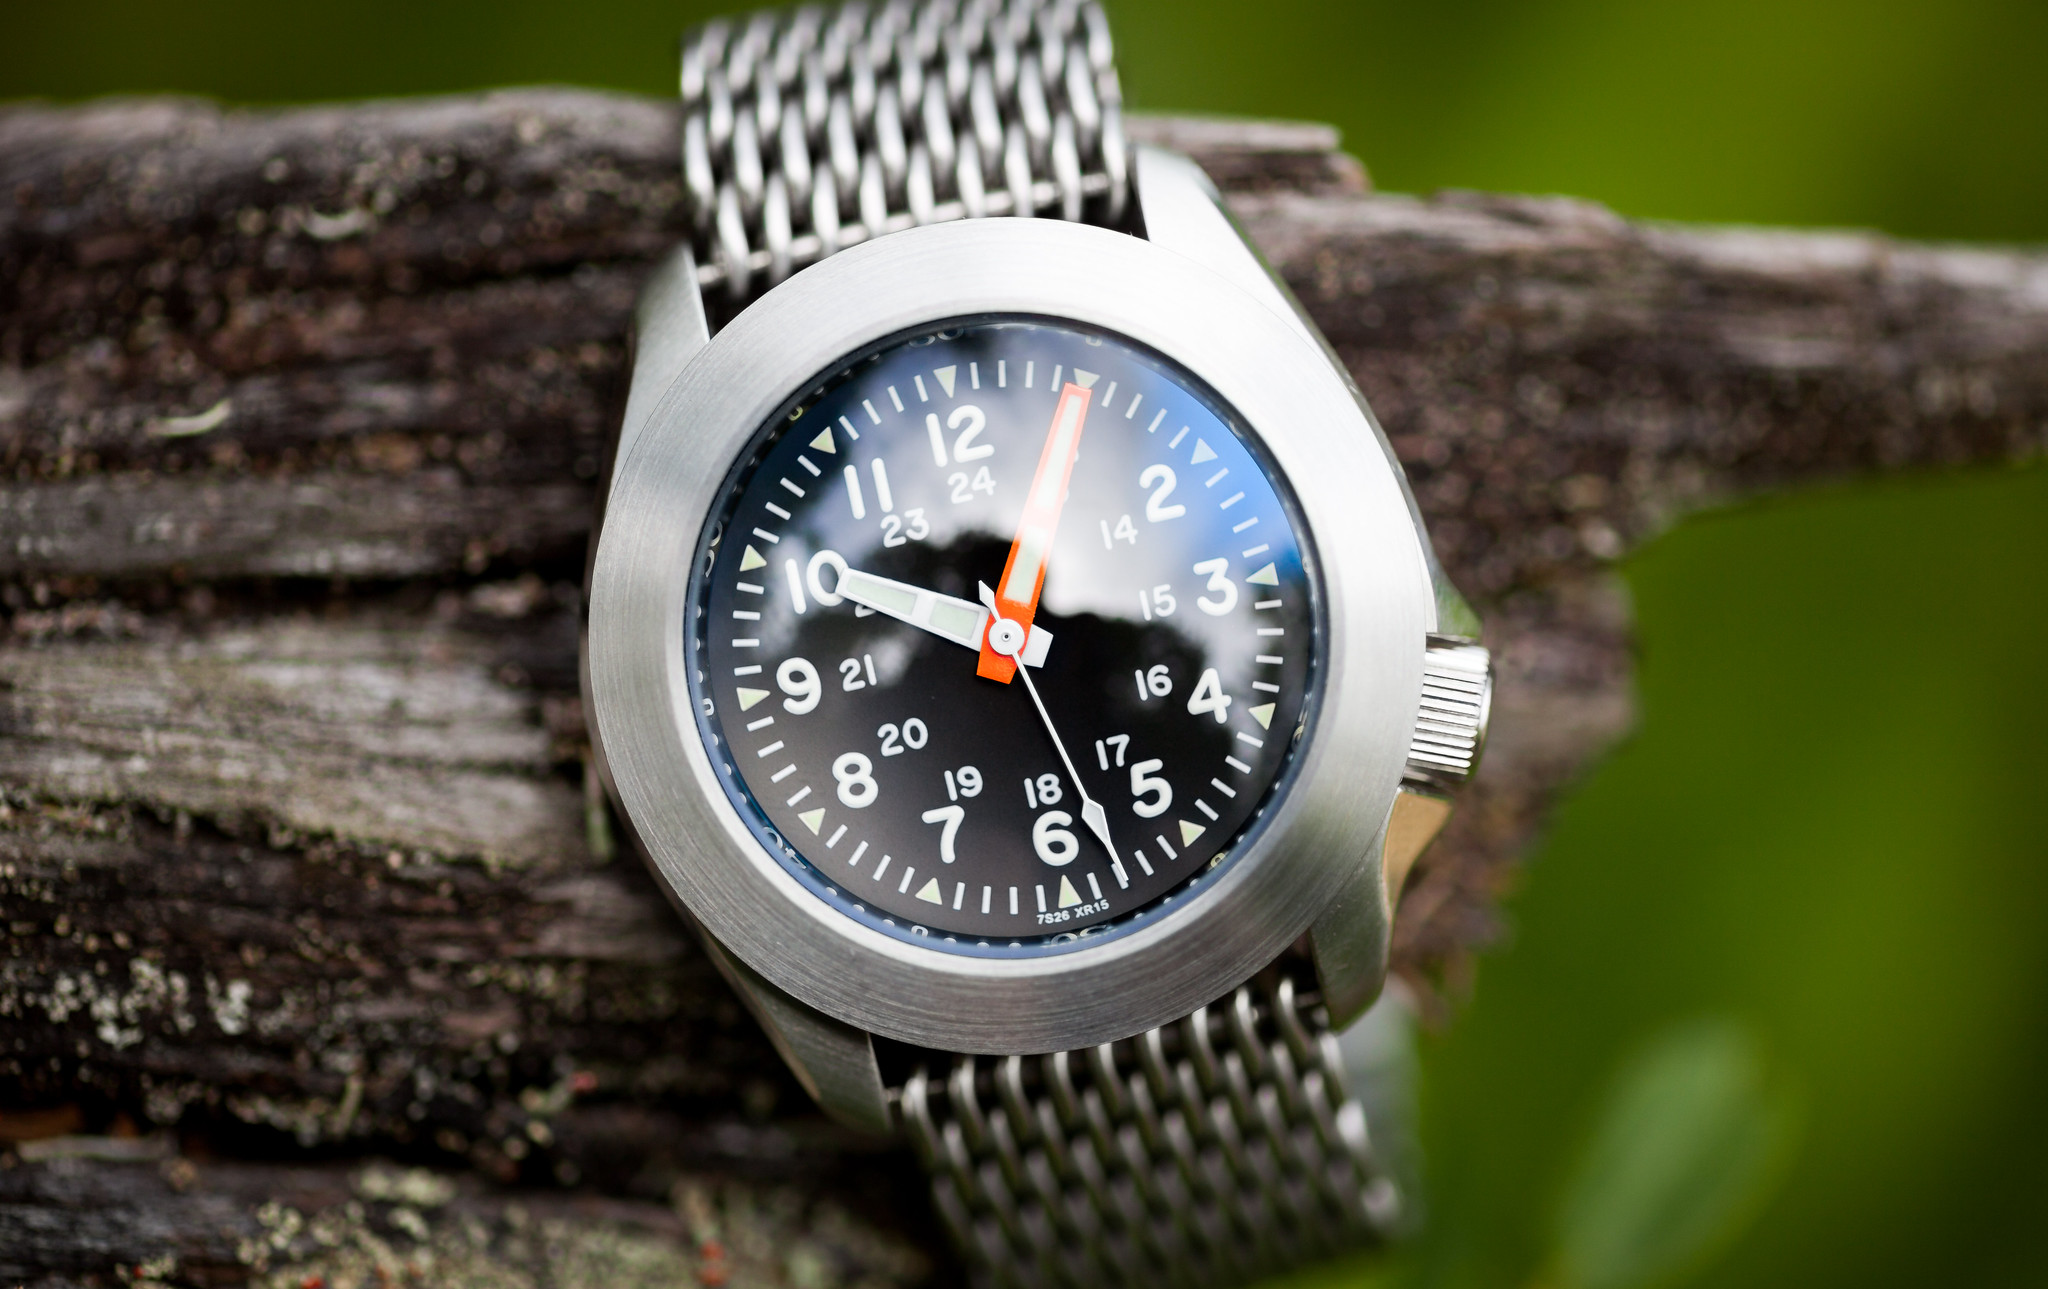 c5k0's timepieces   Wrist Sushi - A Japanese Watch Forum